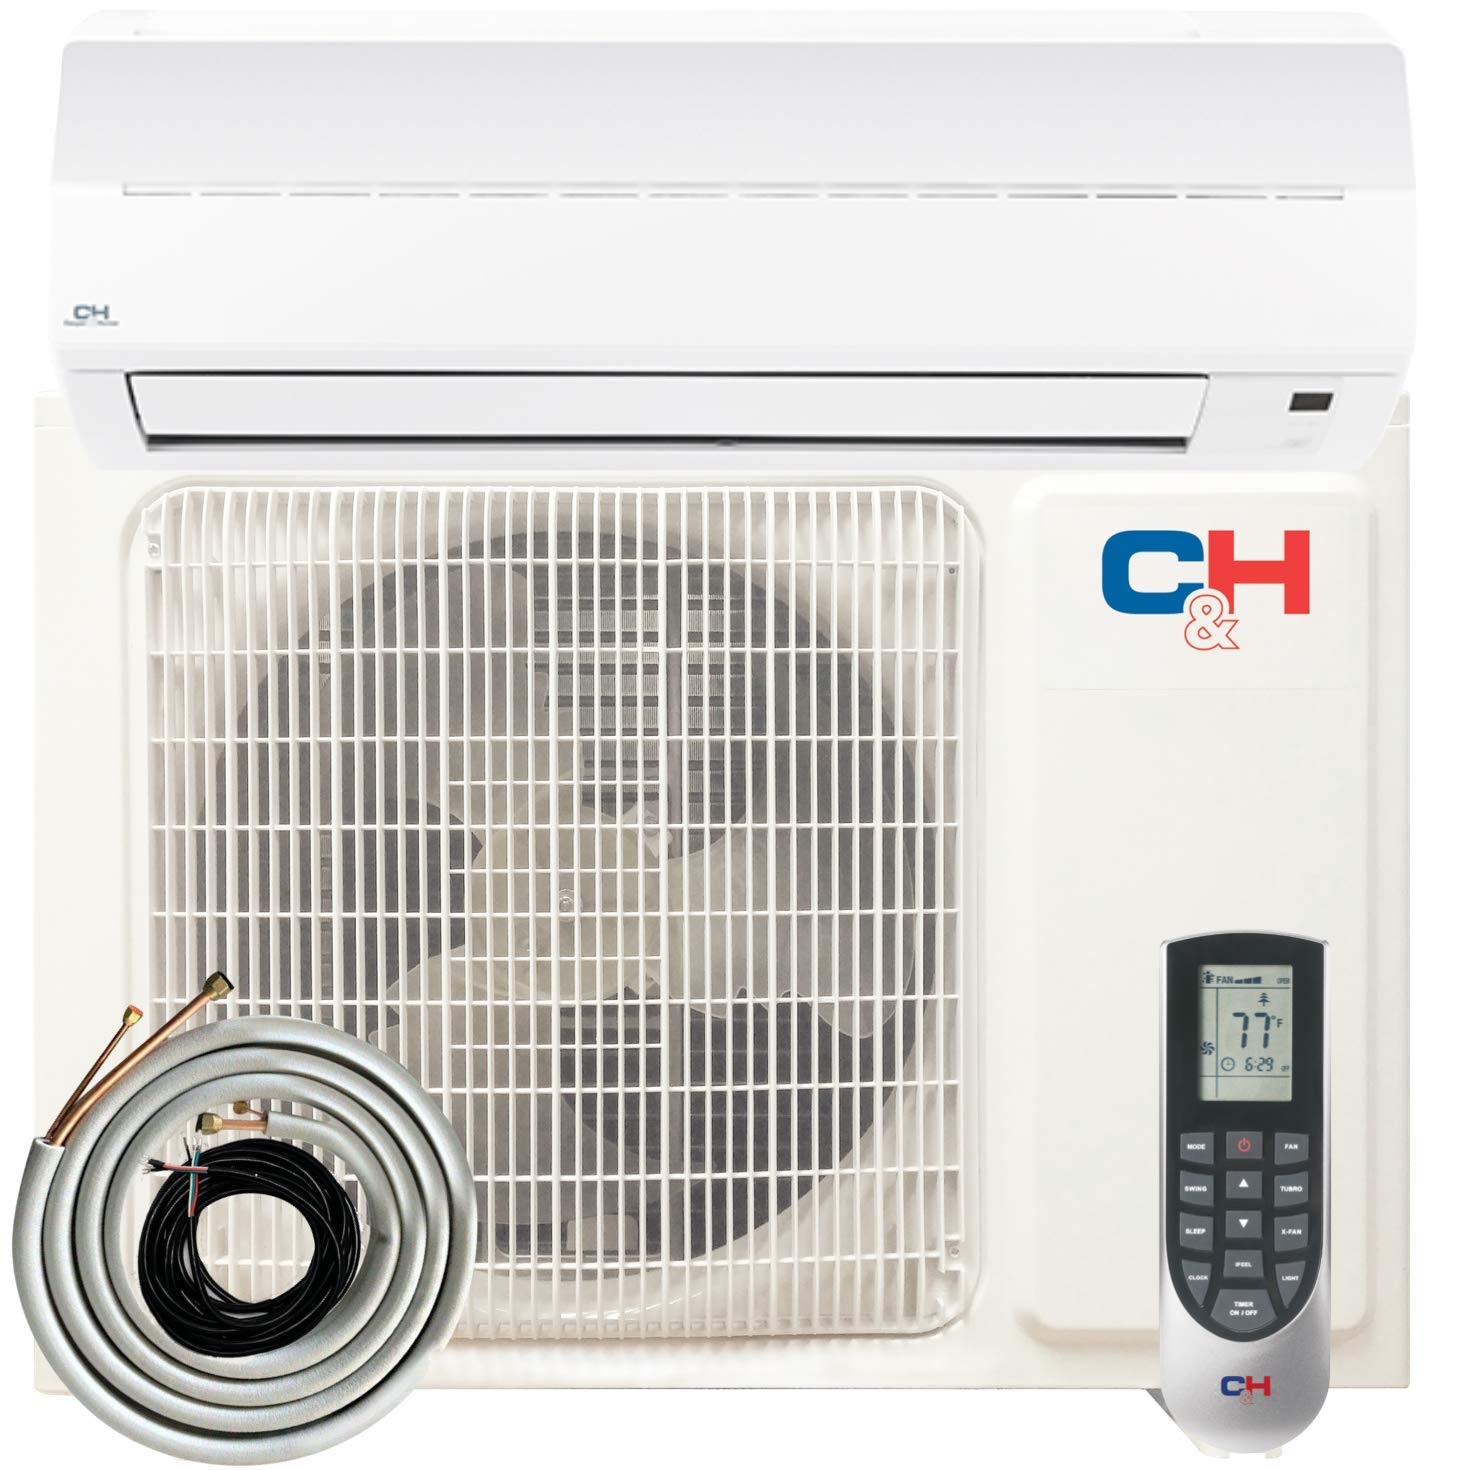 COOPER HUNTER Ductless Conditioner Installation